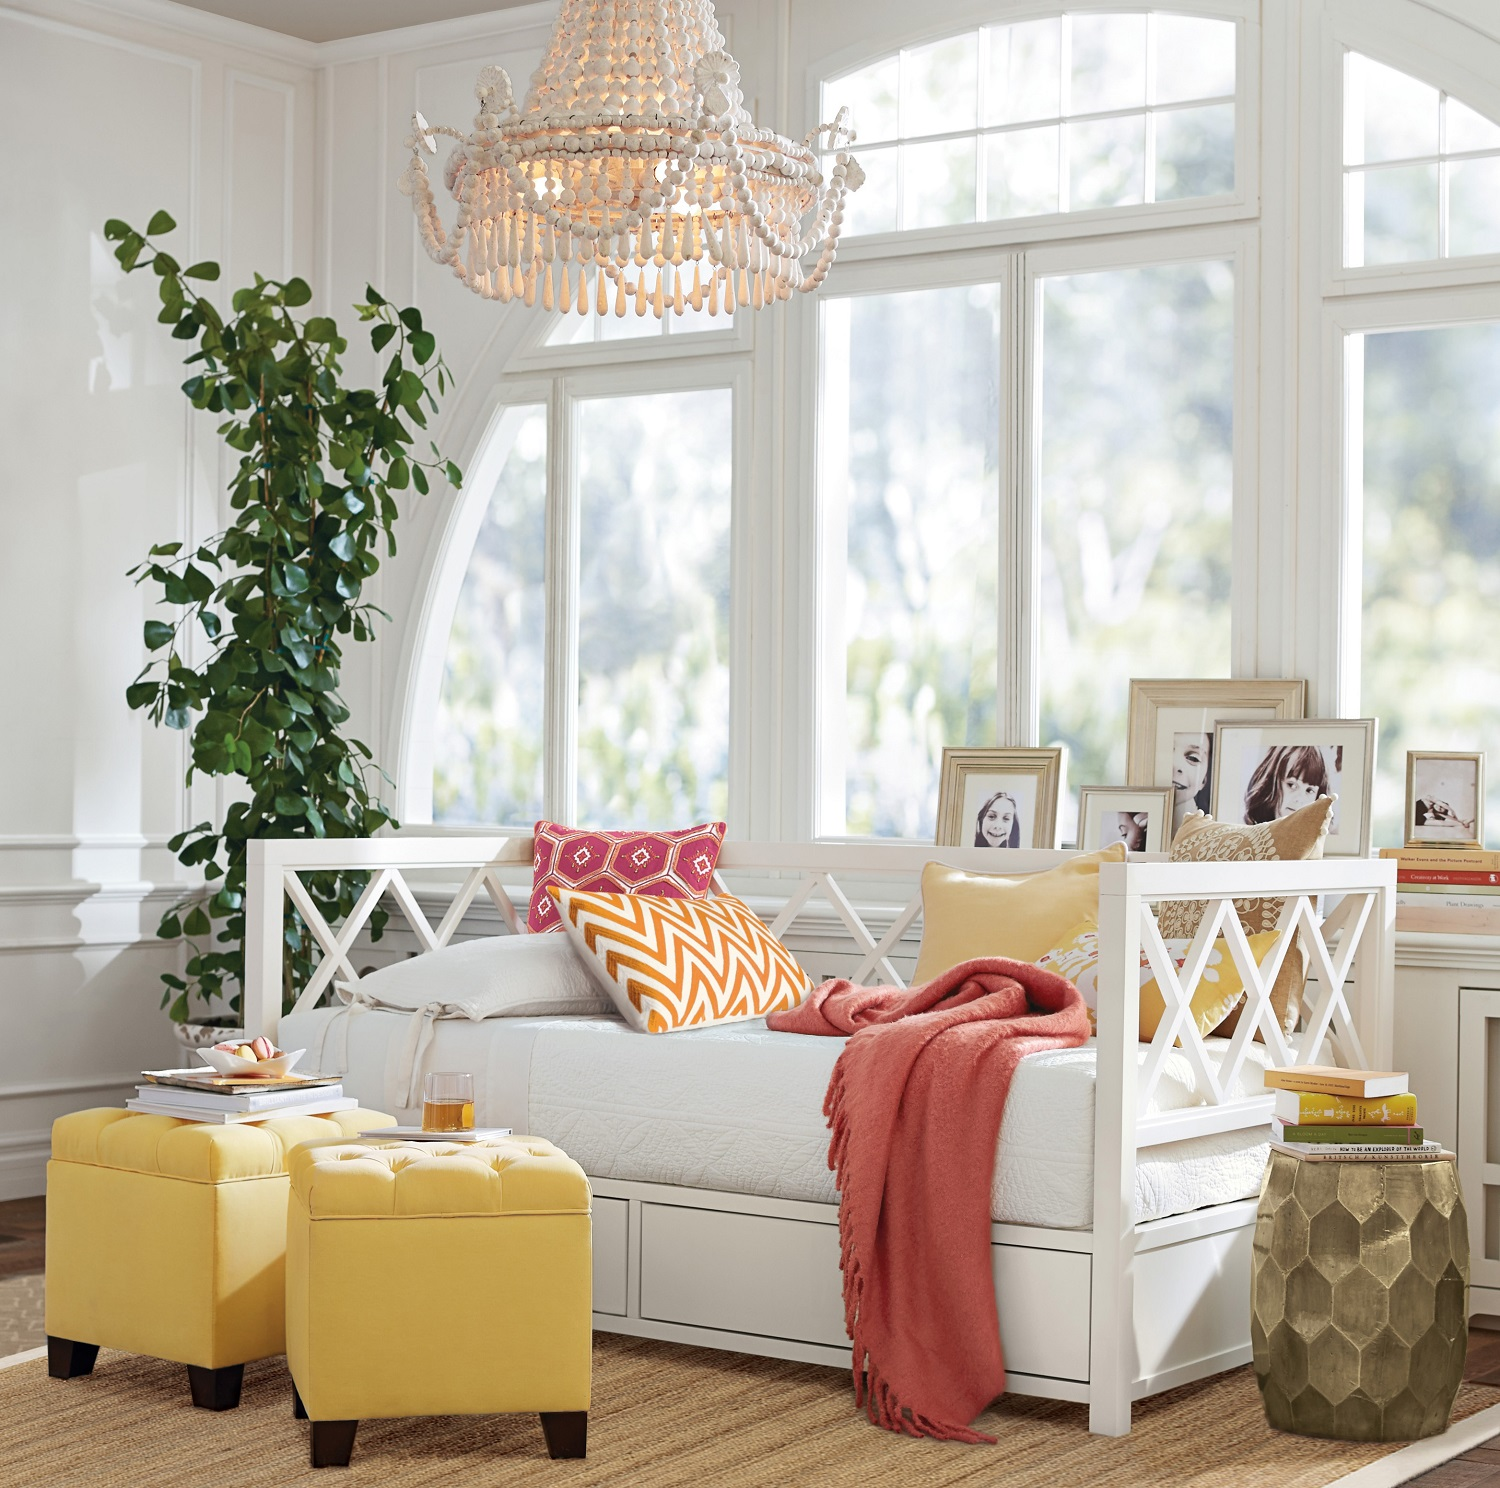 Yellow accents such as throw pillows, Lorraine tufted storage cubes, Venice metal-clad accent stool, pillows and books are beautiful in this white room with Pottery Barn's Clara Lattice Storage Day Bed. With the coral throw, this is a pretty color palette that works well with yellow. Photo: courtesy of Pottery Barn.